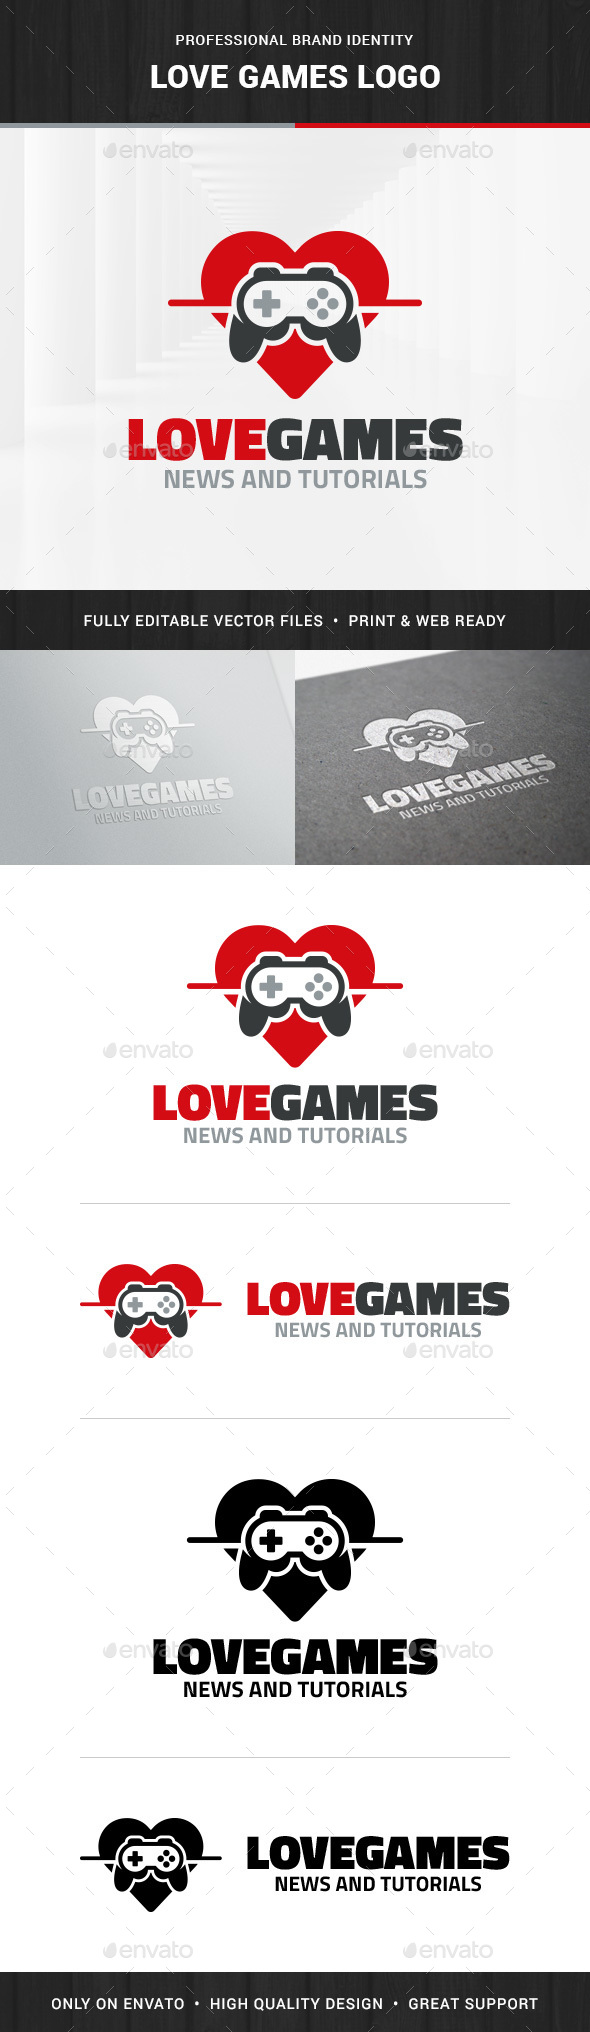 Love Games Logo Templates